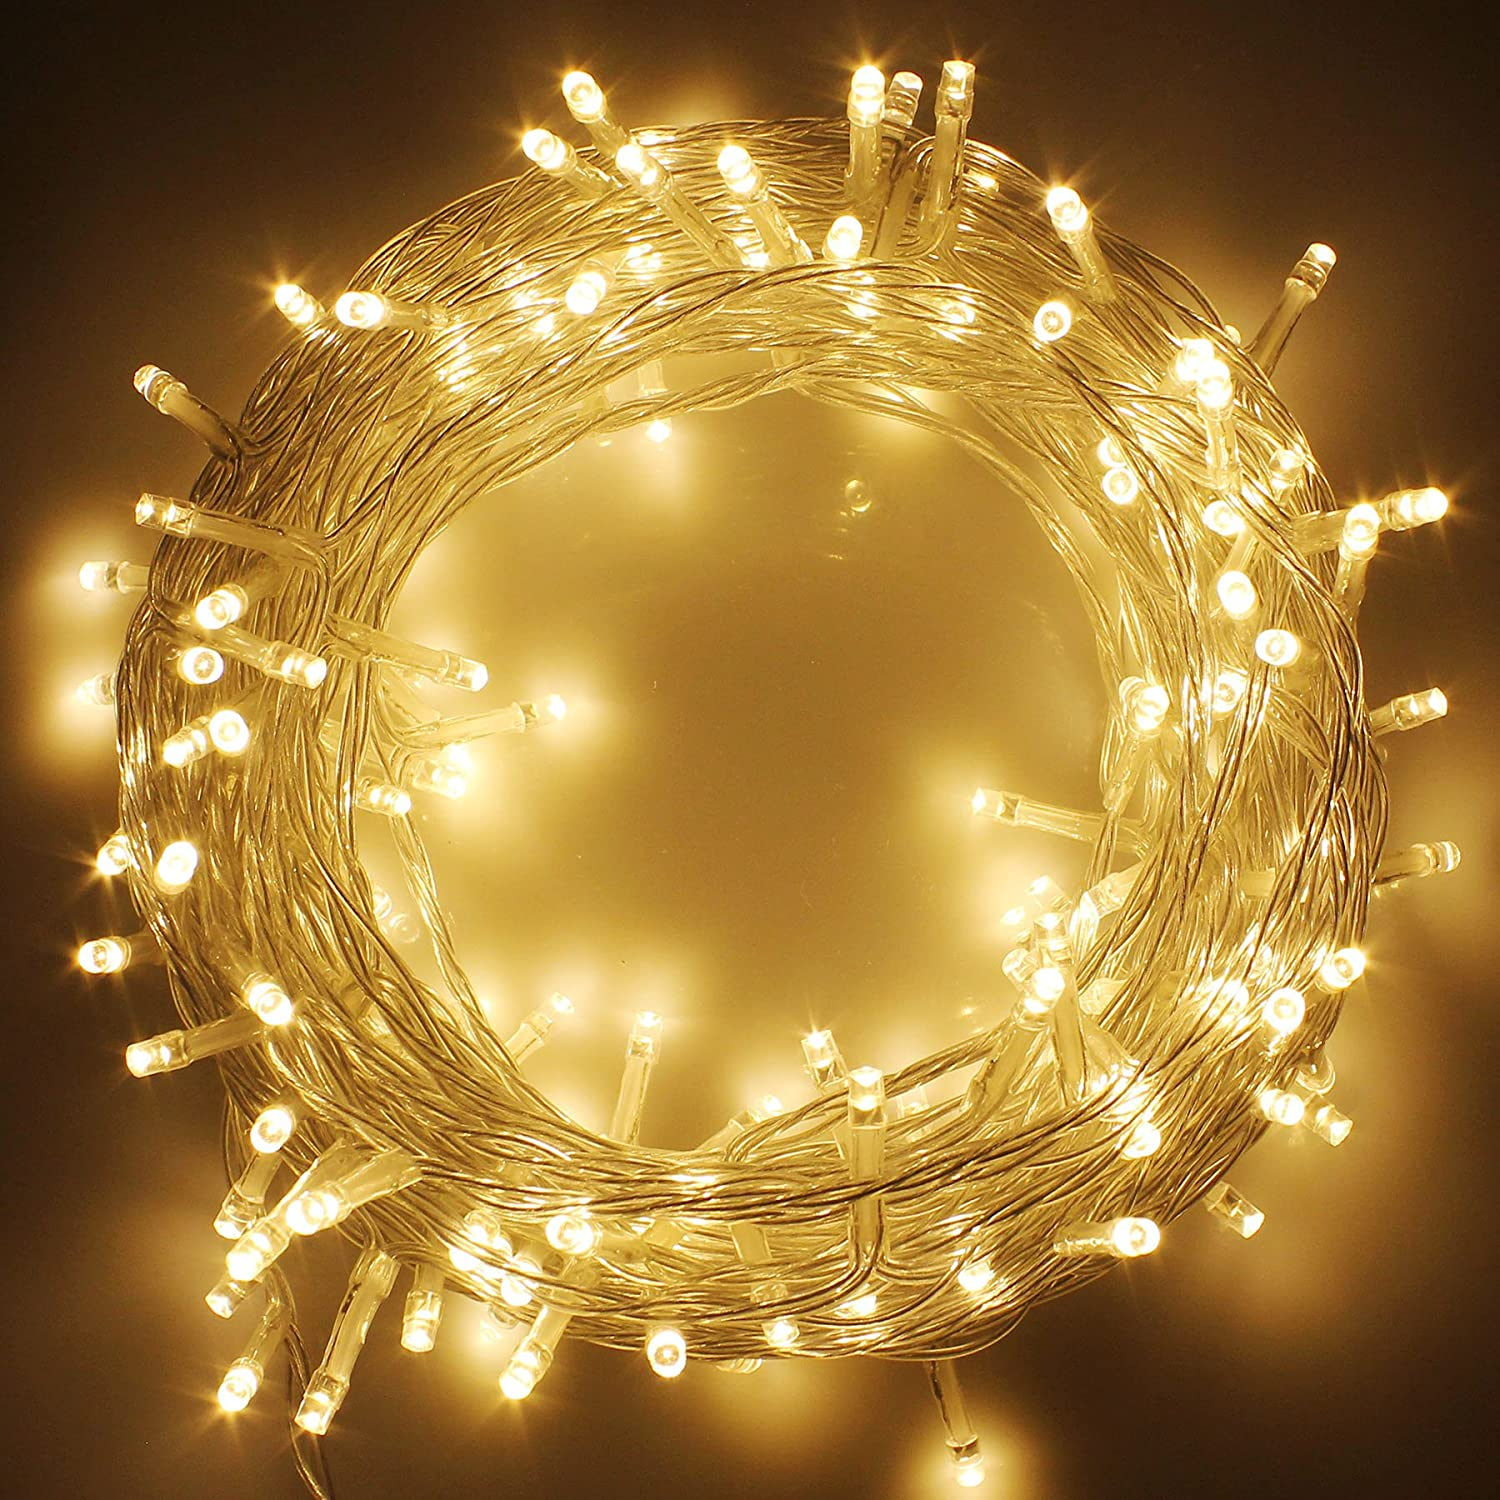 Amazon Com 100 1000 Led String Fairy Lights On Clear Cable With 8 Light Effects Low Voltage Transformer Included Ideal For Christmas Xmas Party Wedding 1000 Leds Warm White Home Improvement